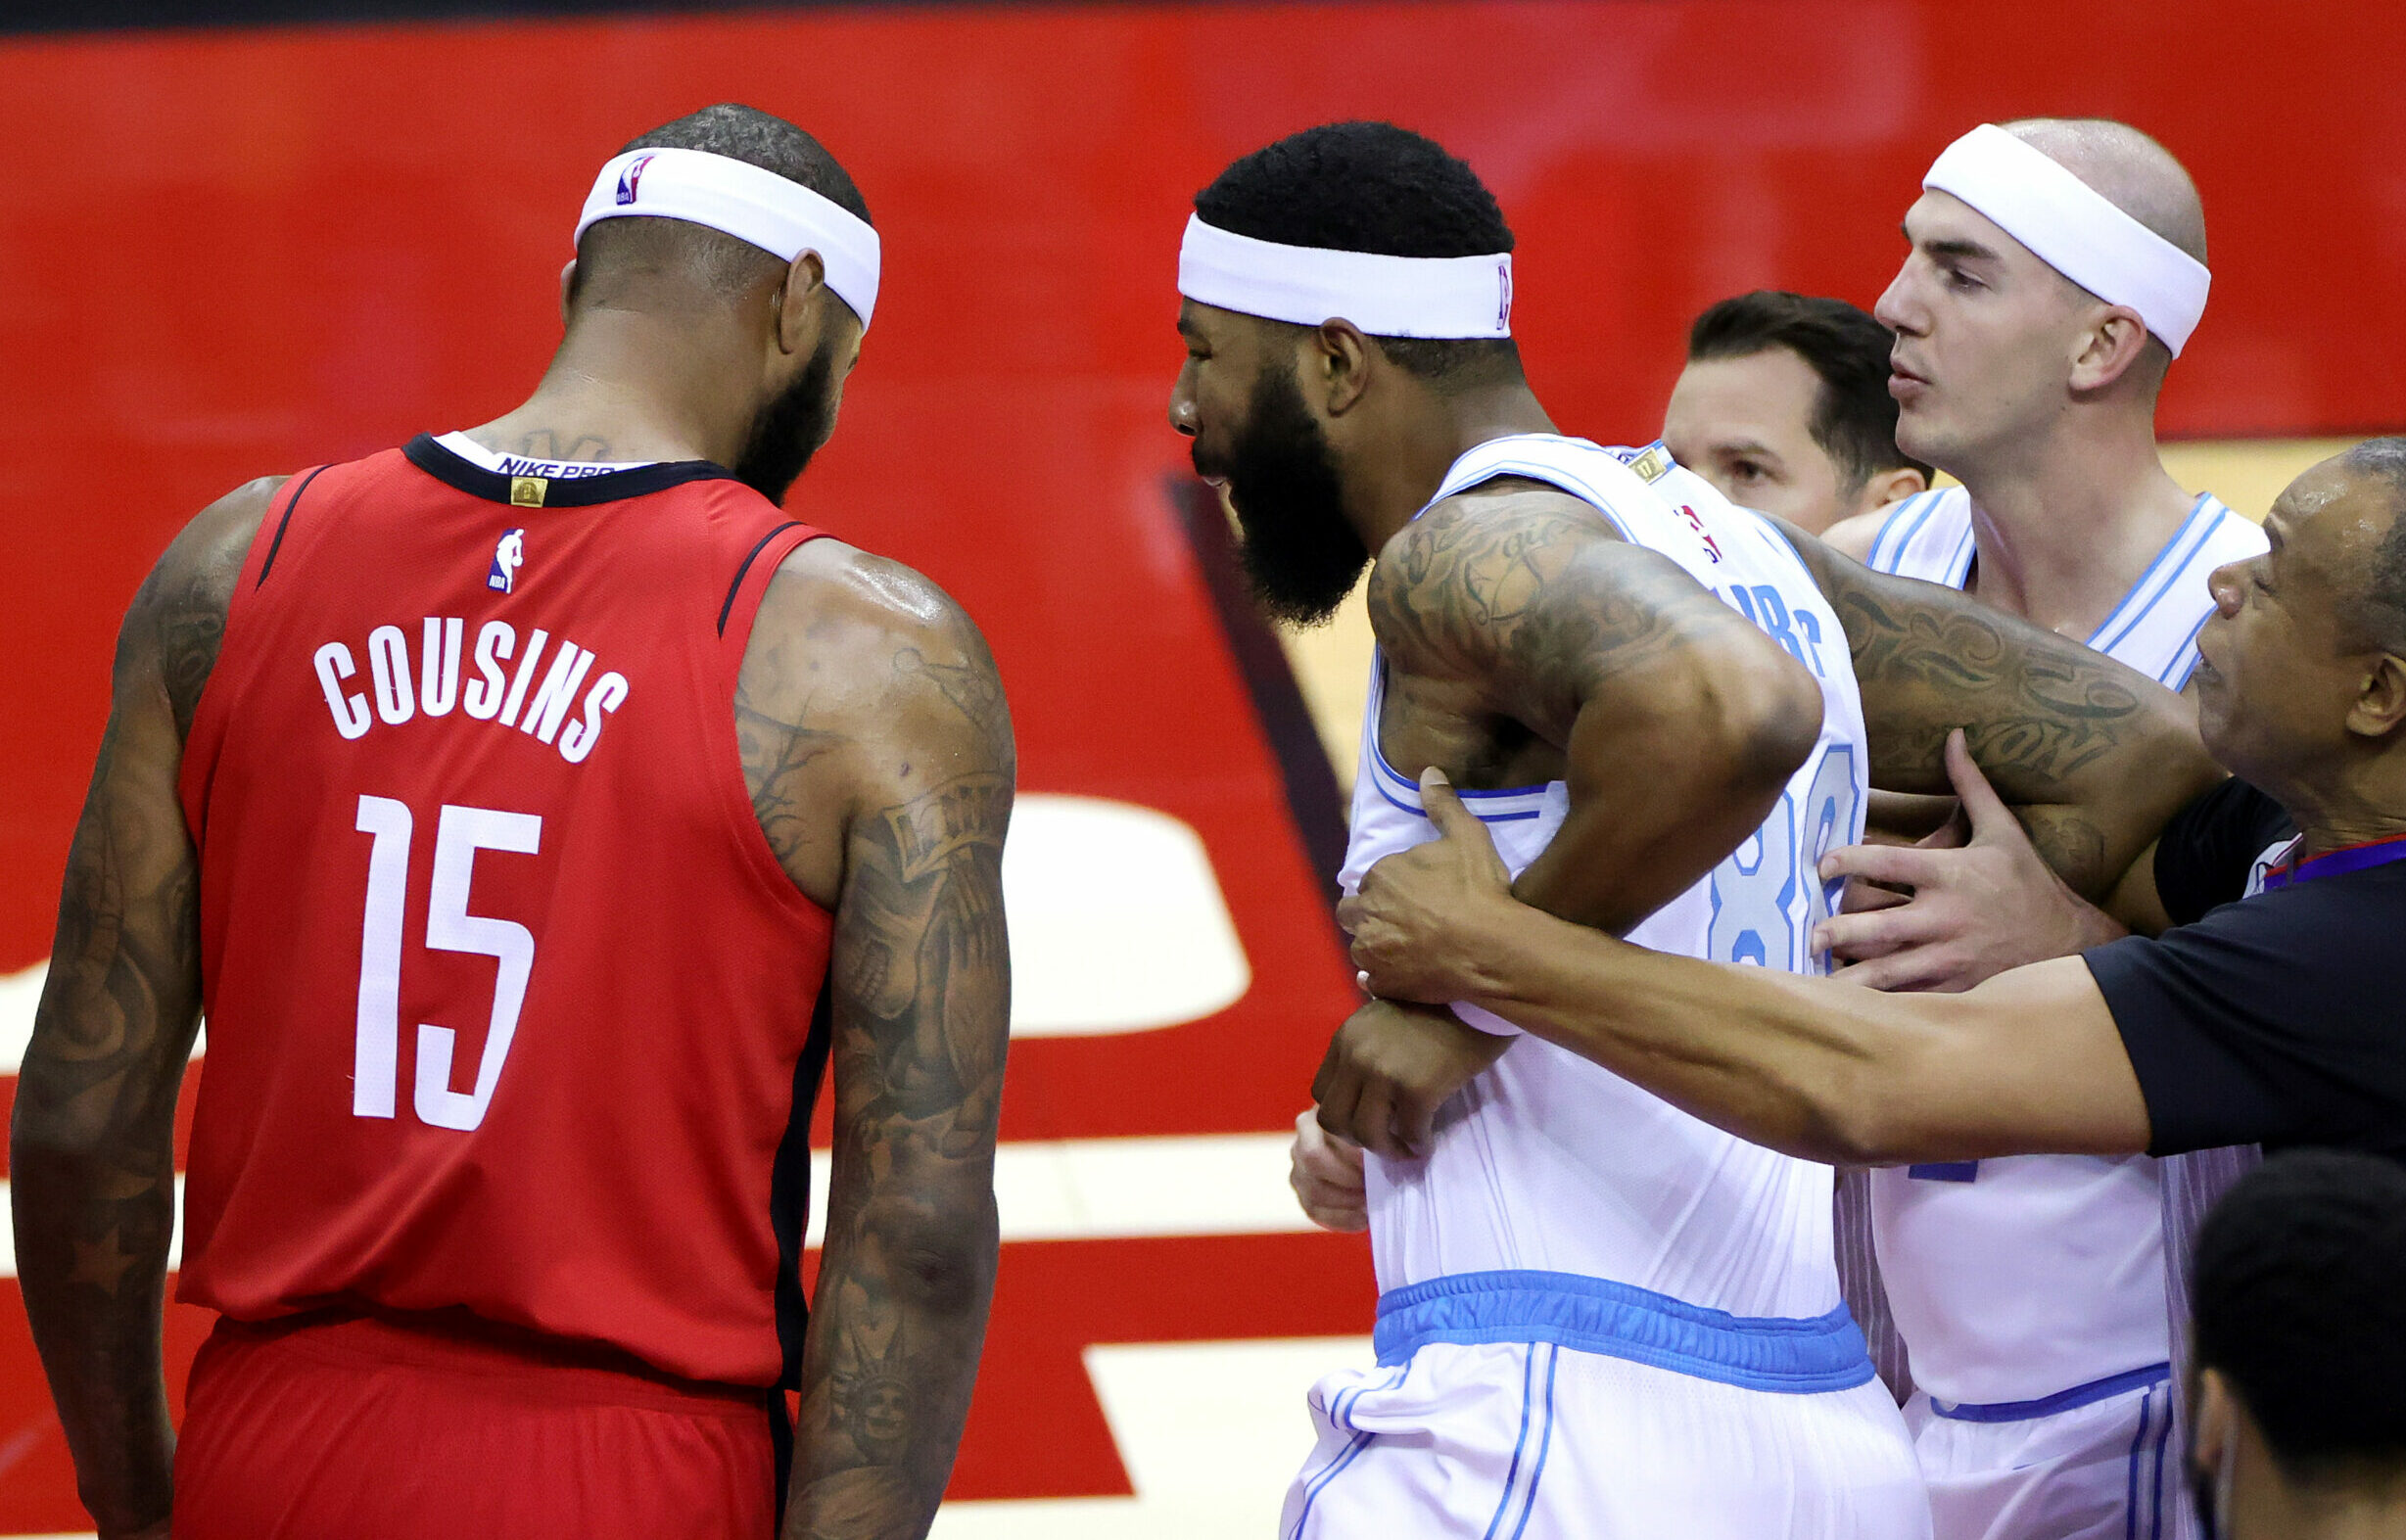 NBA fines Markieff Morris and DeMarcus Cousins for altercation